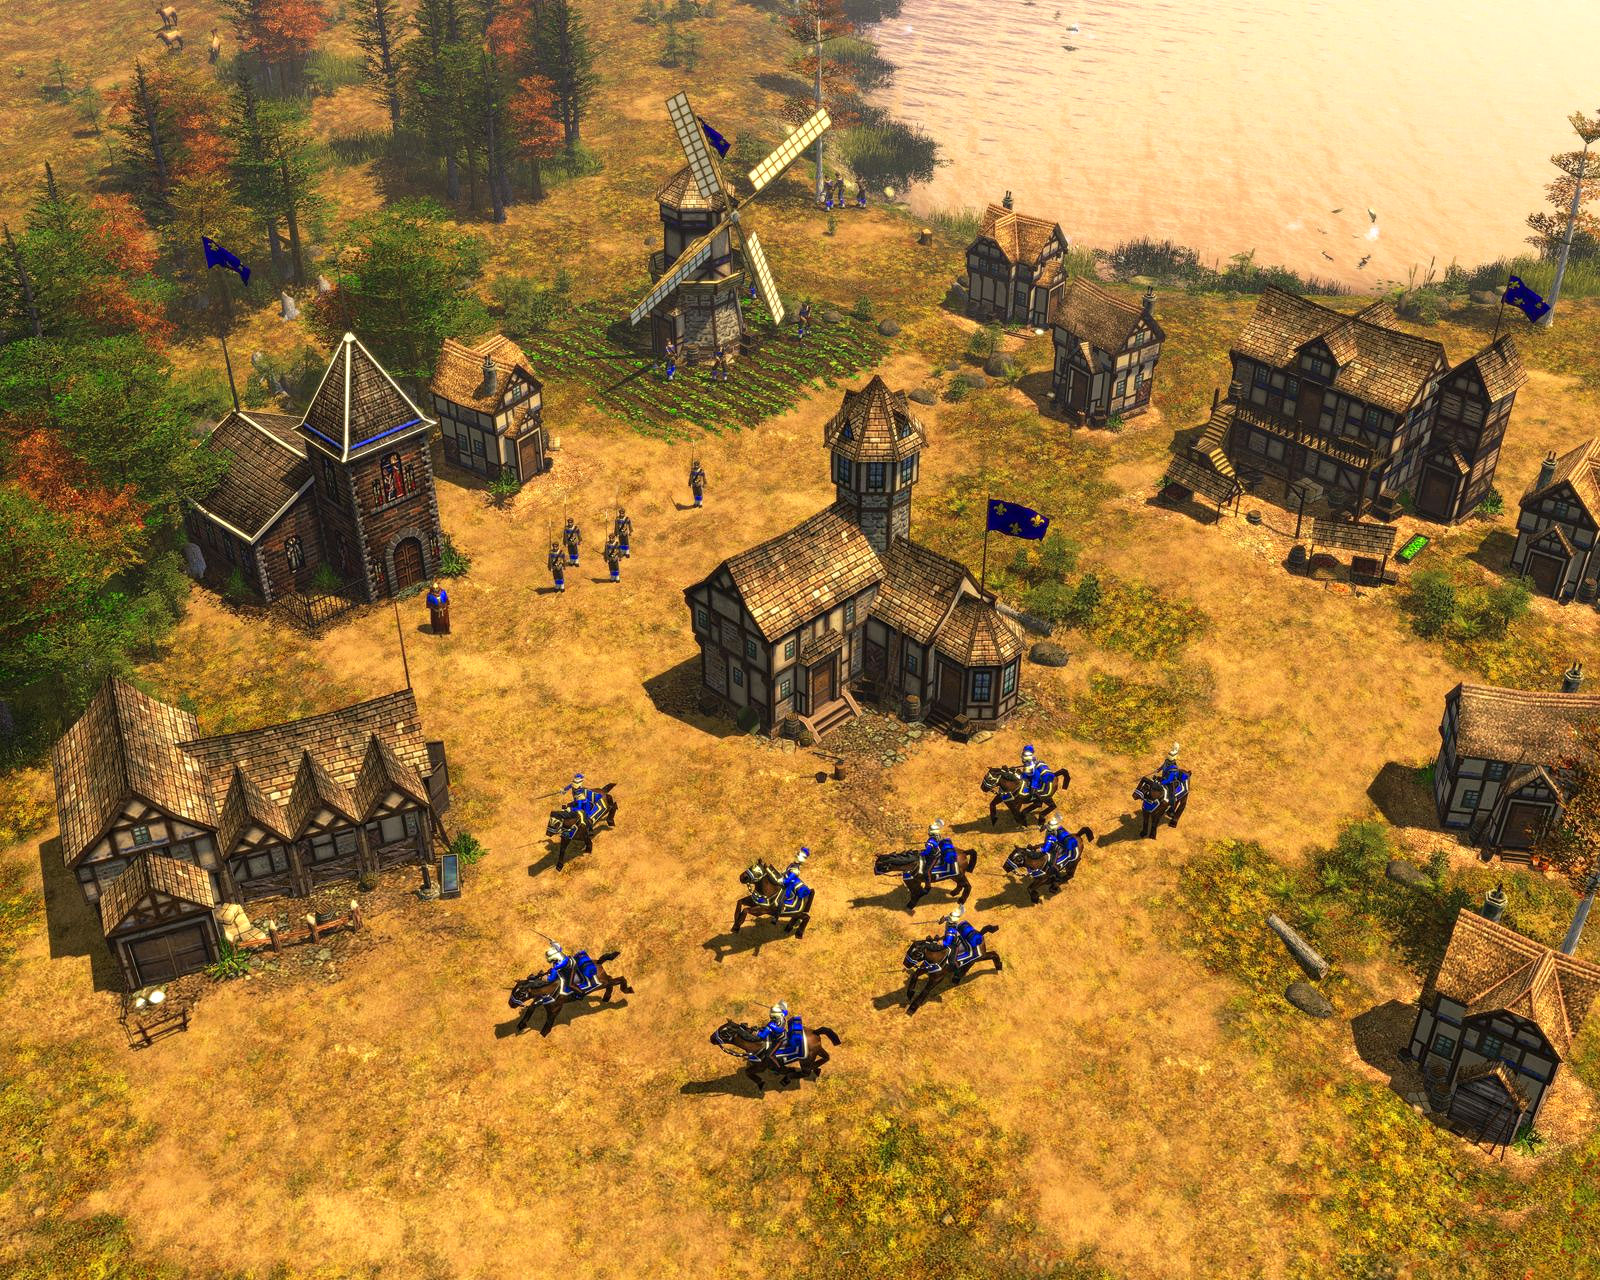 esocommunity age of empires iii tournaments replays - HD1600×1280